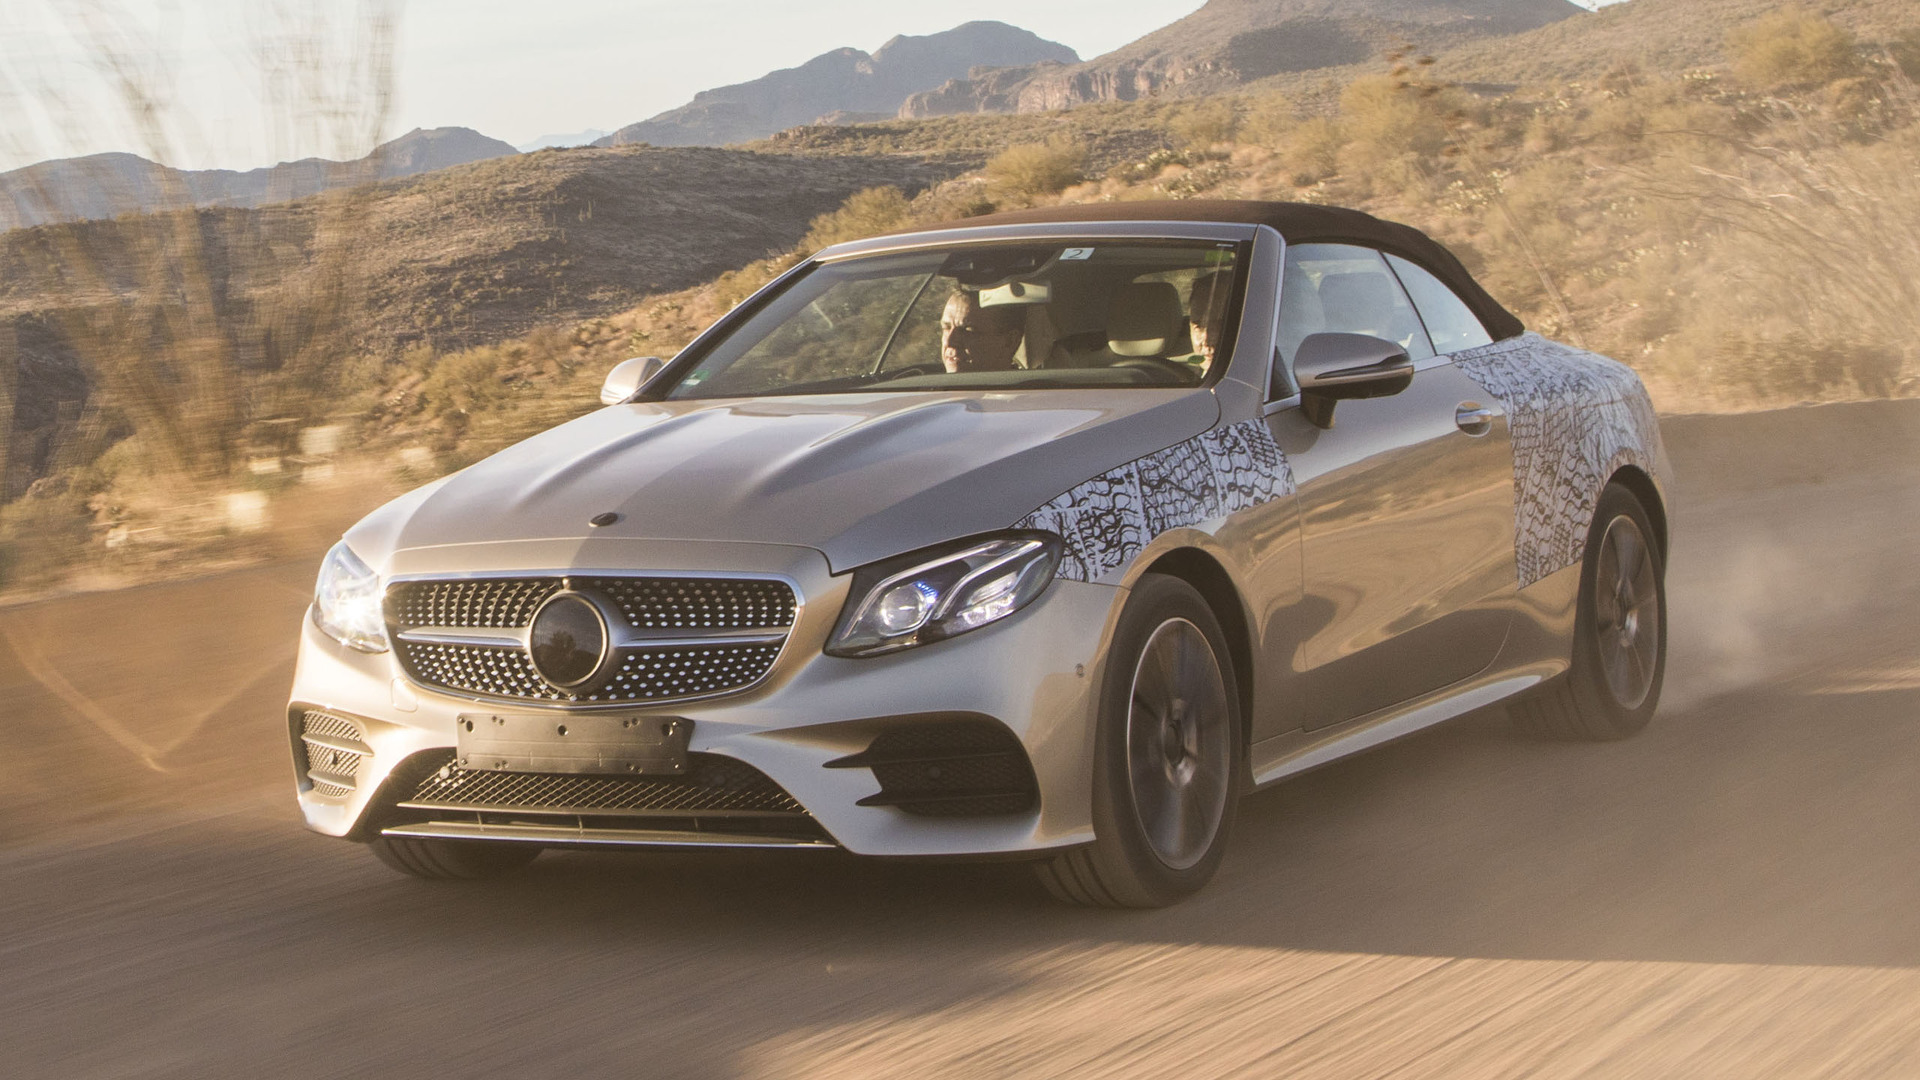 https://icdn-5.motor1.com/images/mgl/WvORL/s1/2018-mercedes-benz-e-class-cabriolet-first-ride.jpg